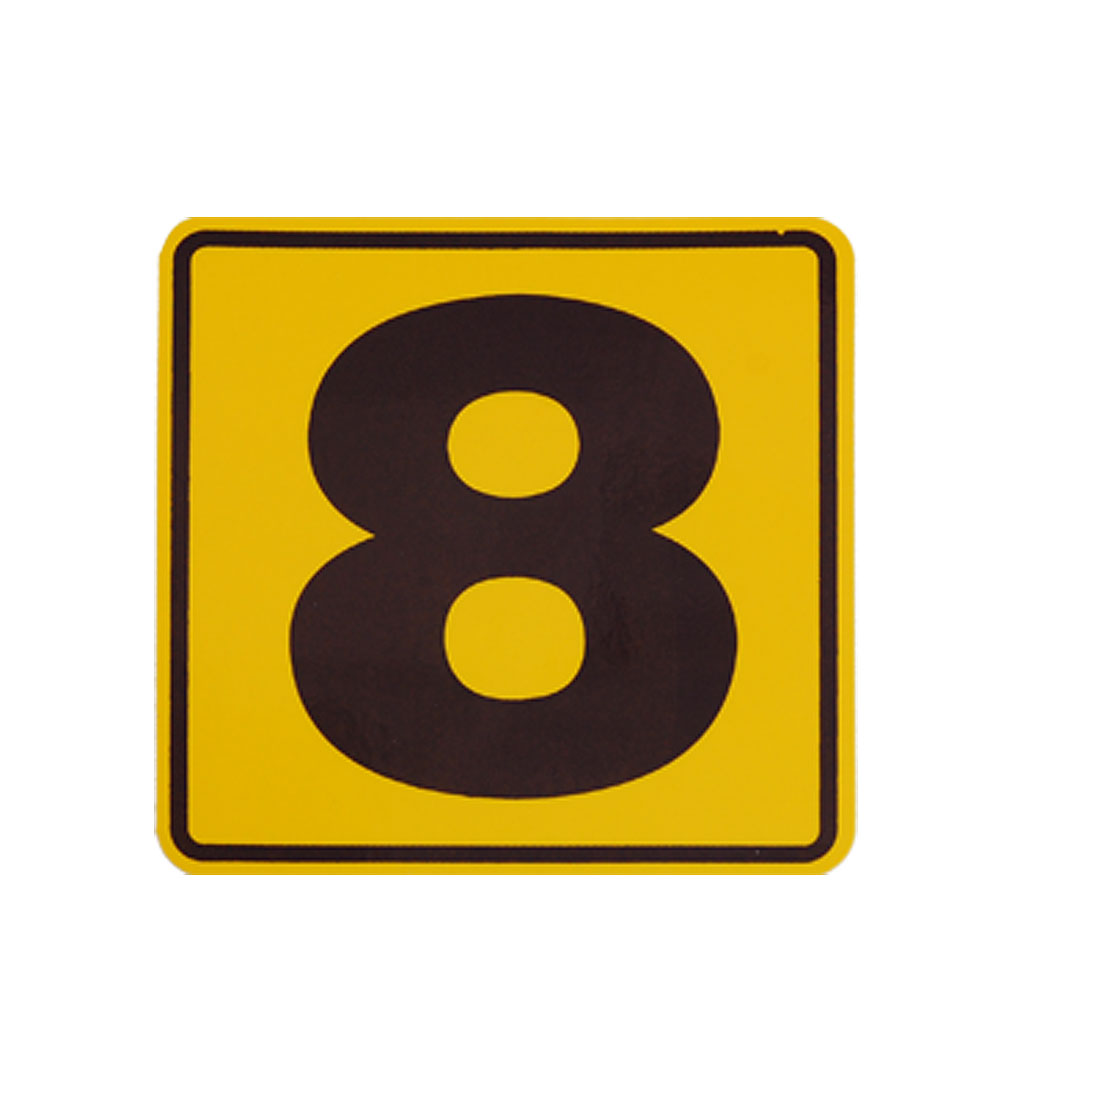 Car Black Yellow Number 8 Square Reflective Sticker Decal